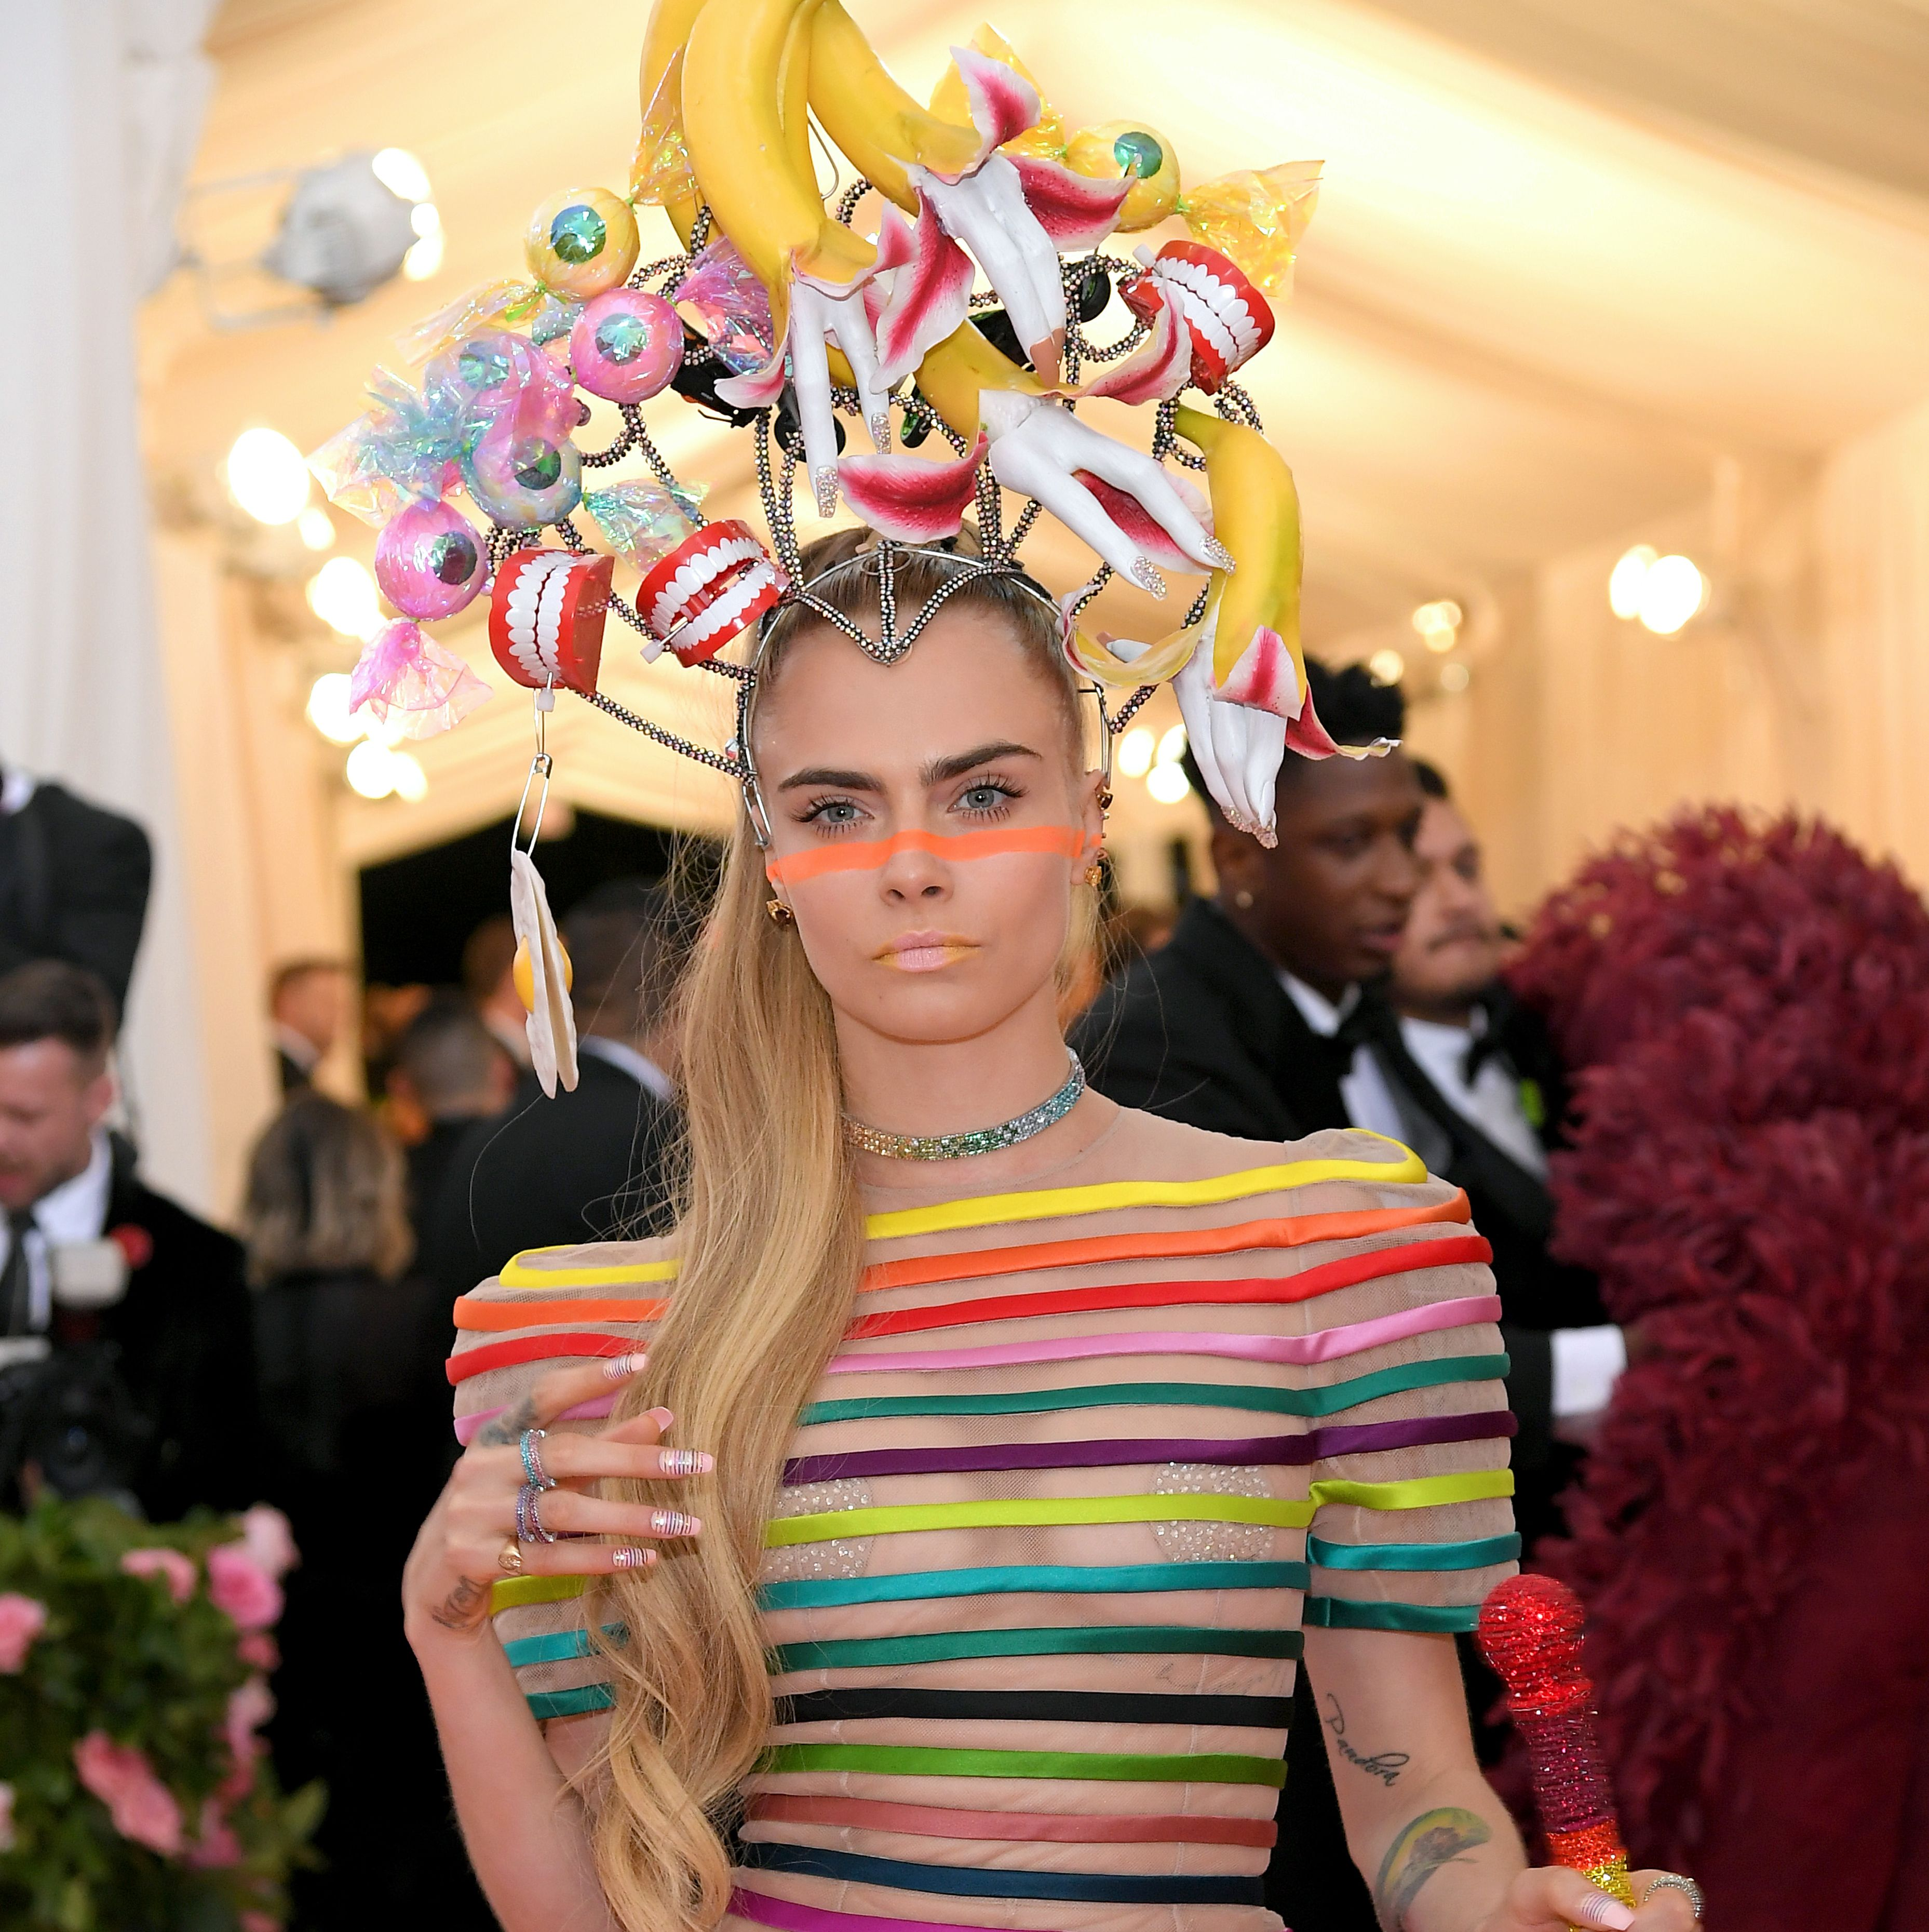 Cara Delevingne Delevingne went with a minimalist makeup look—save for an orange stripe across her face and yellow on her lips. An extra long blonde high pony anchored the dramatic headpiece.